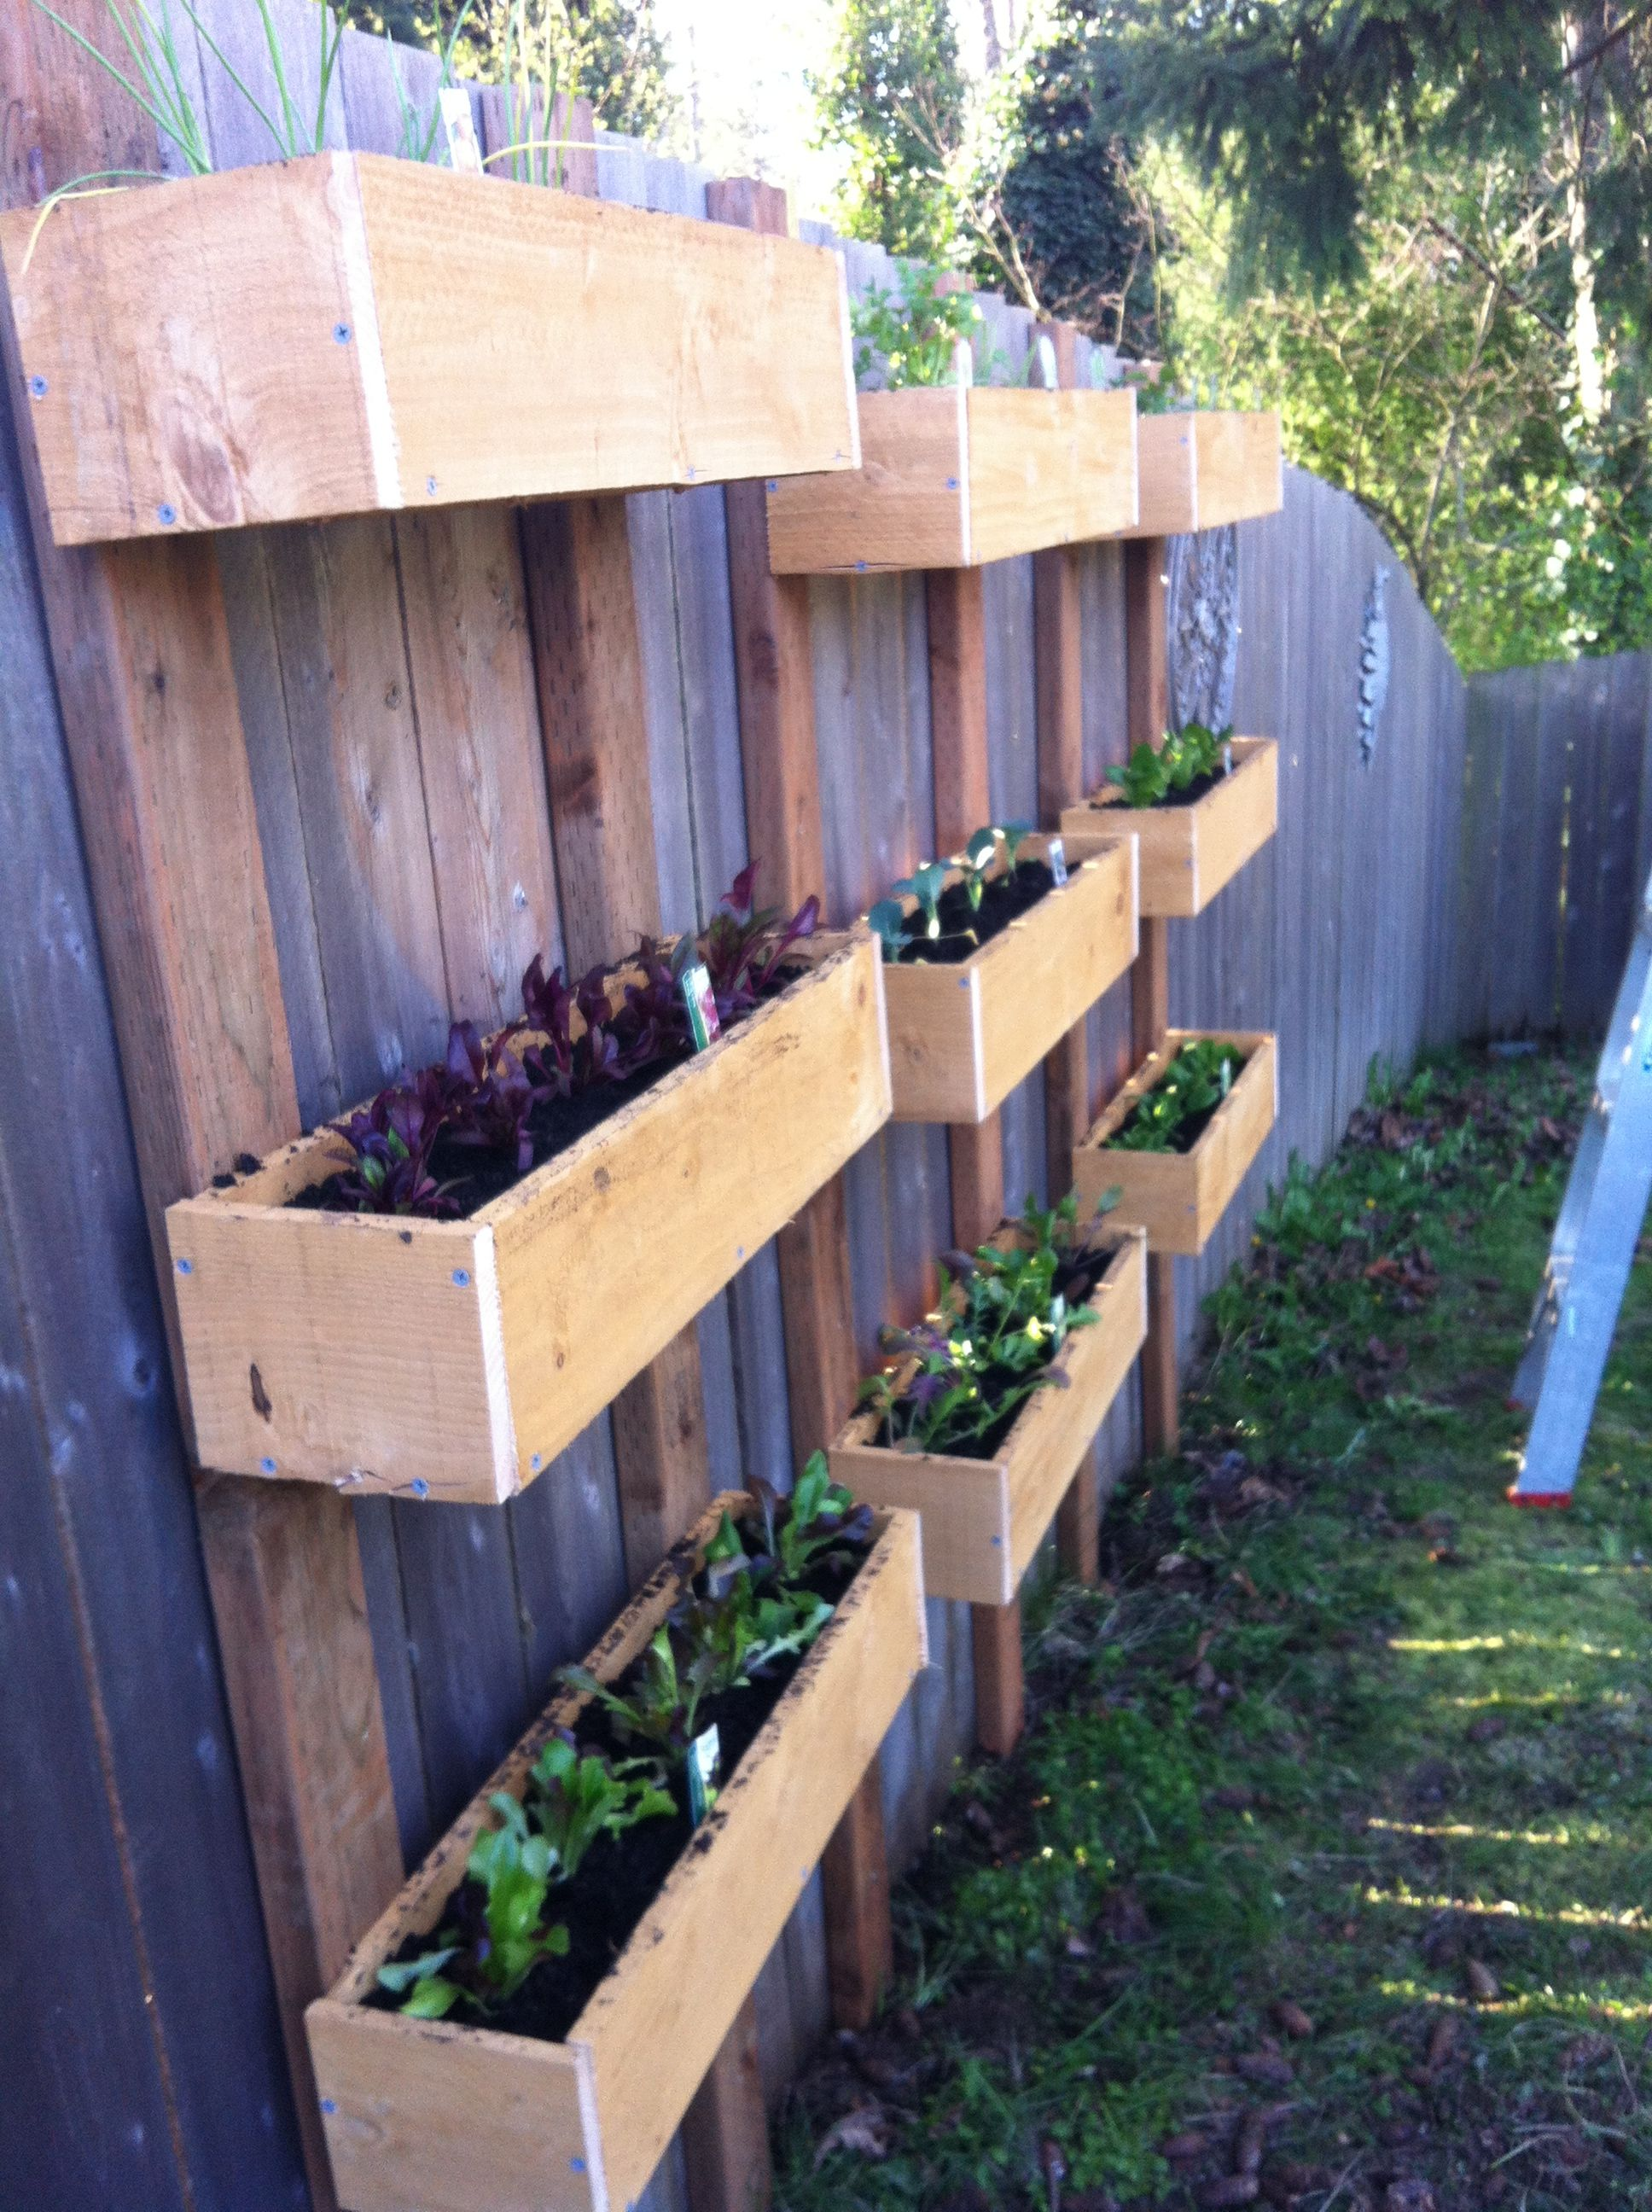 Hanging planter boxes on the fence Garden planter boxes